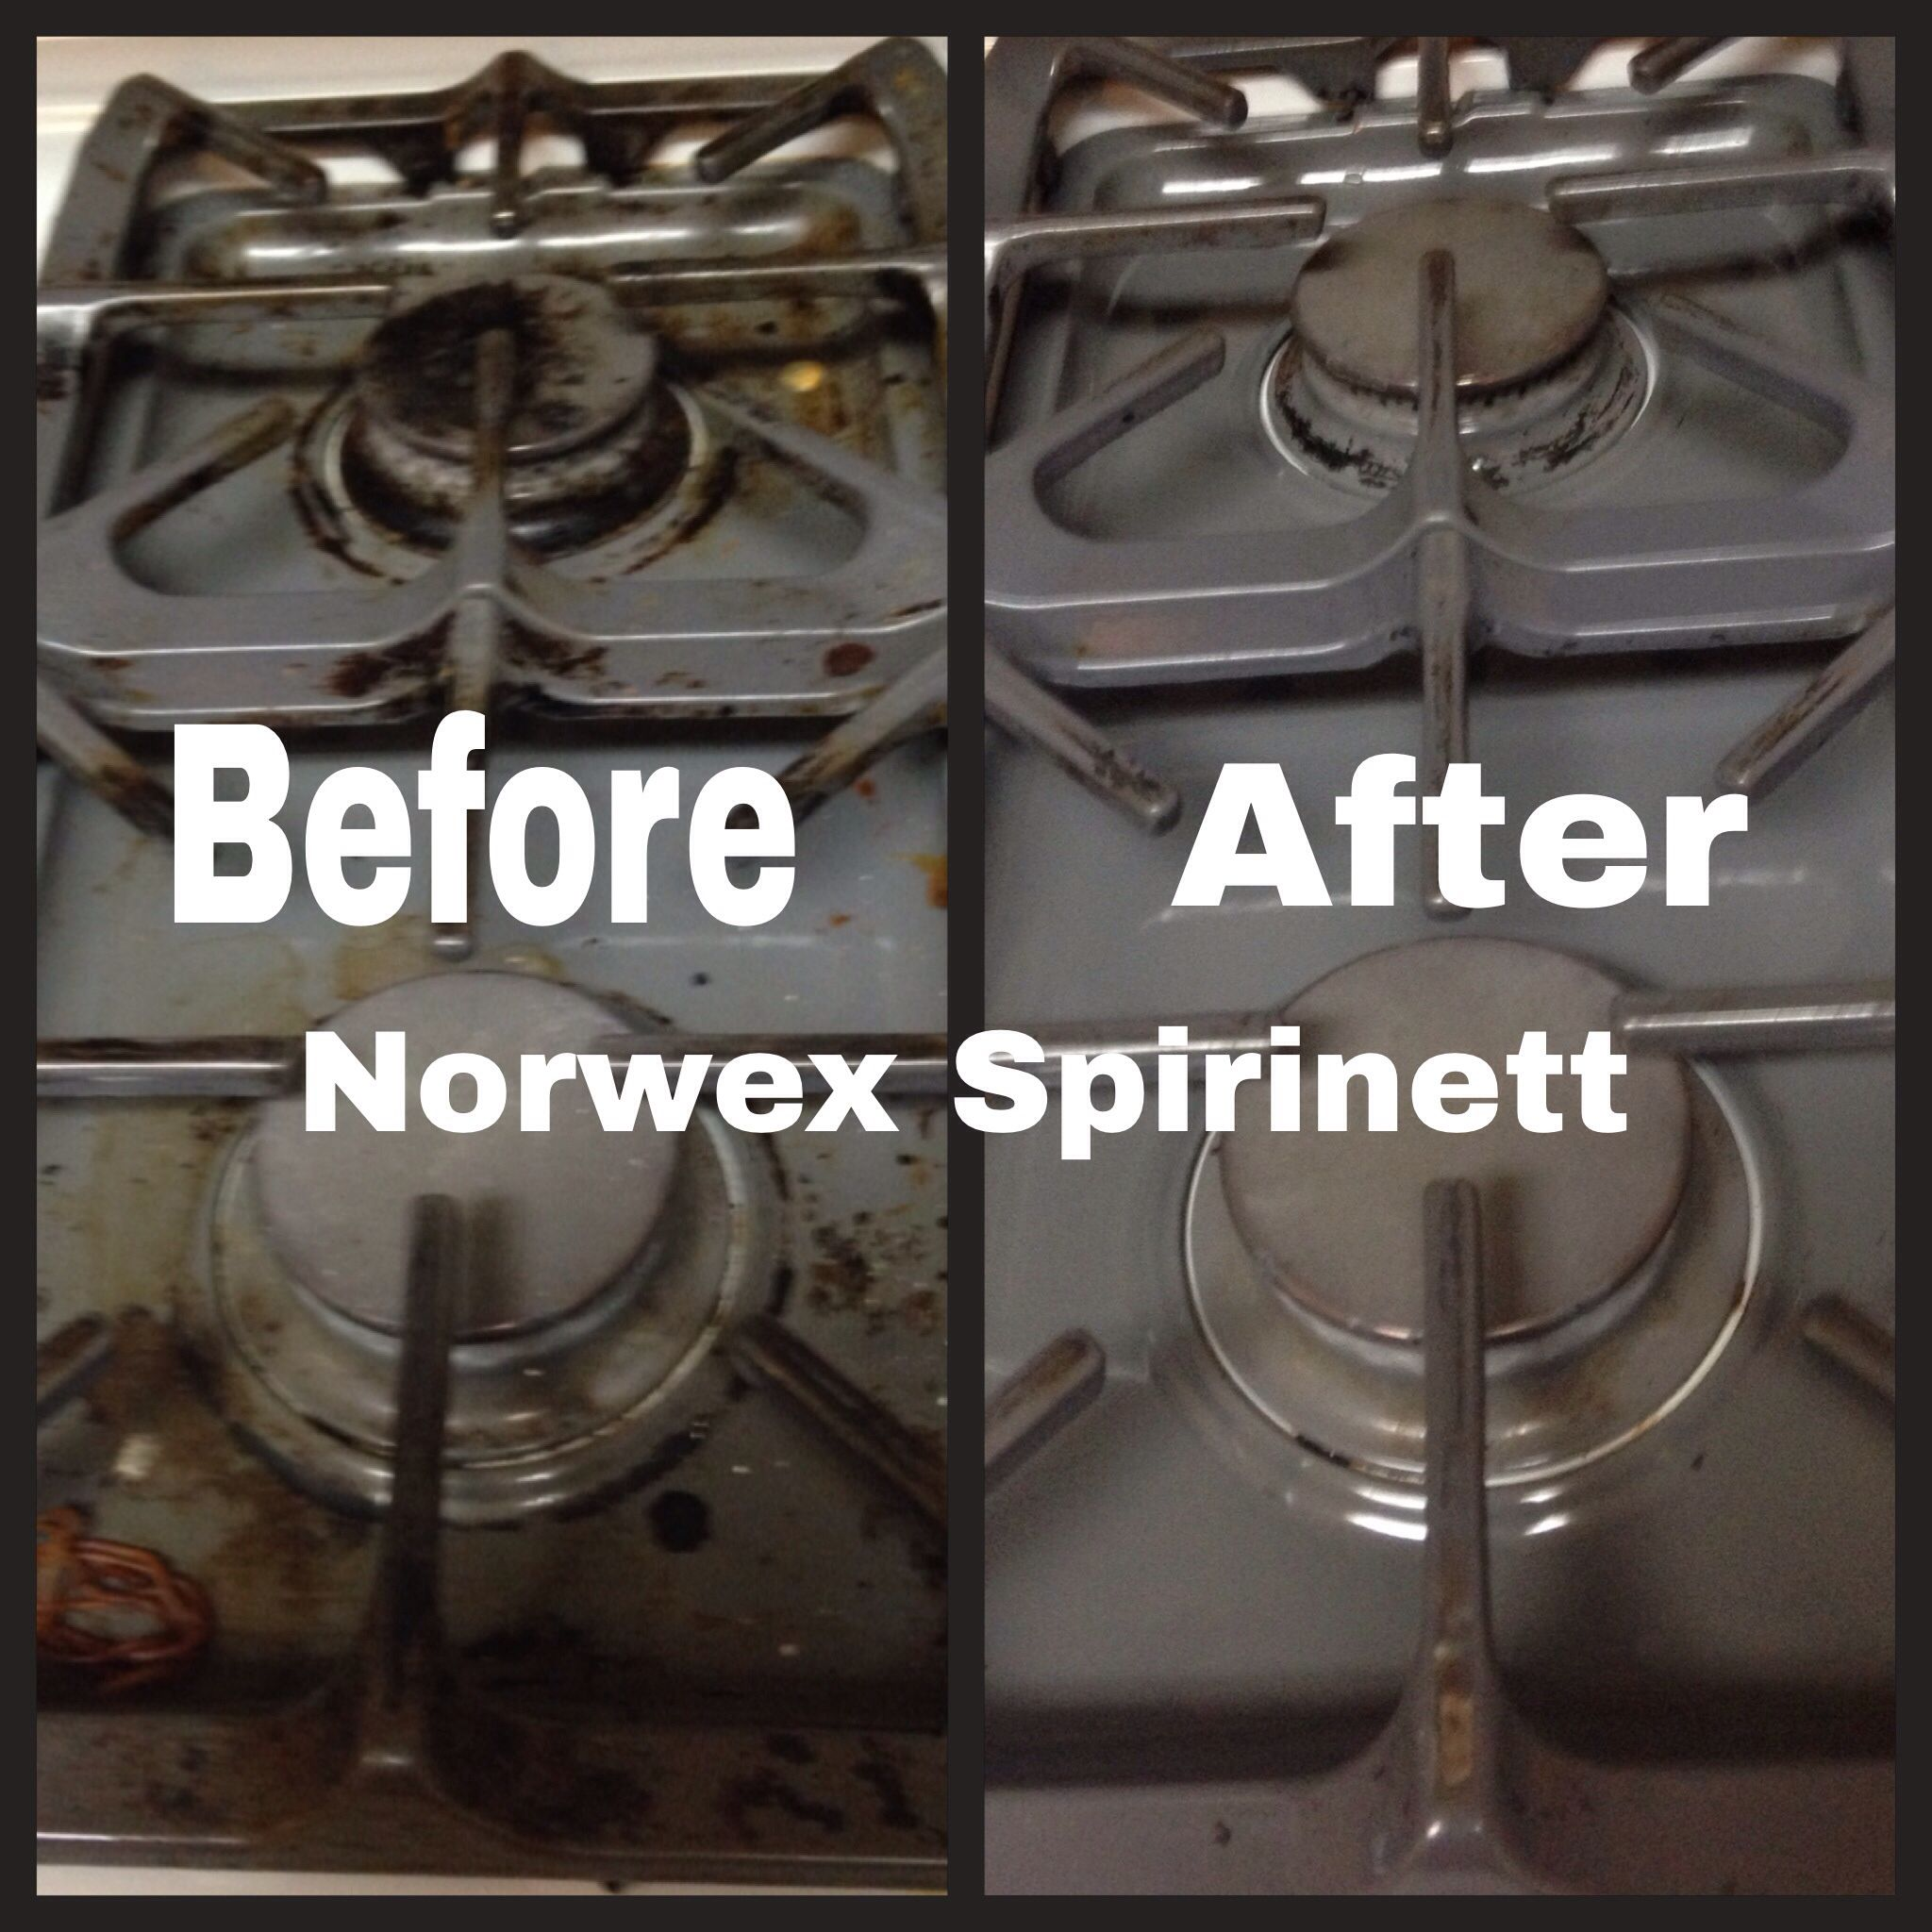 ZERO chemicals used to clean my stove! Now I have no excuse.